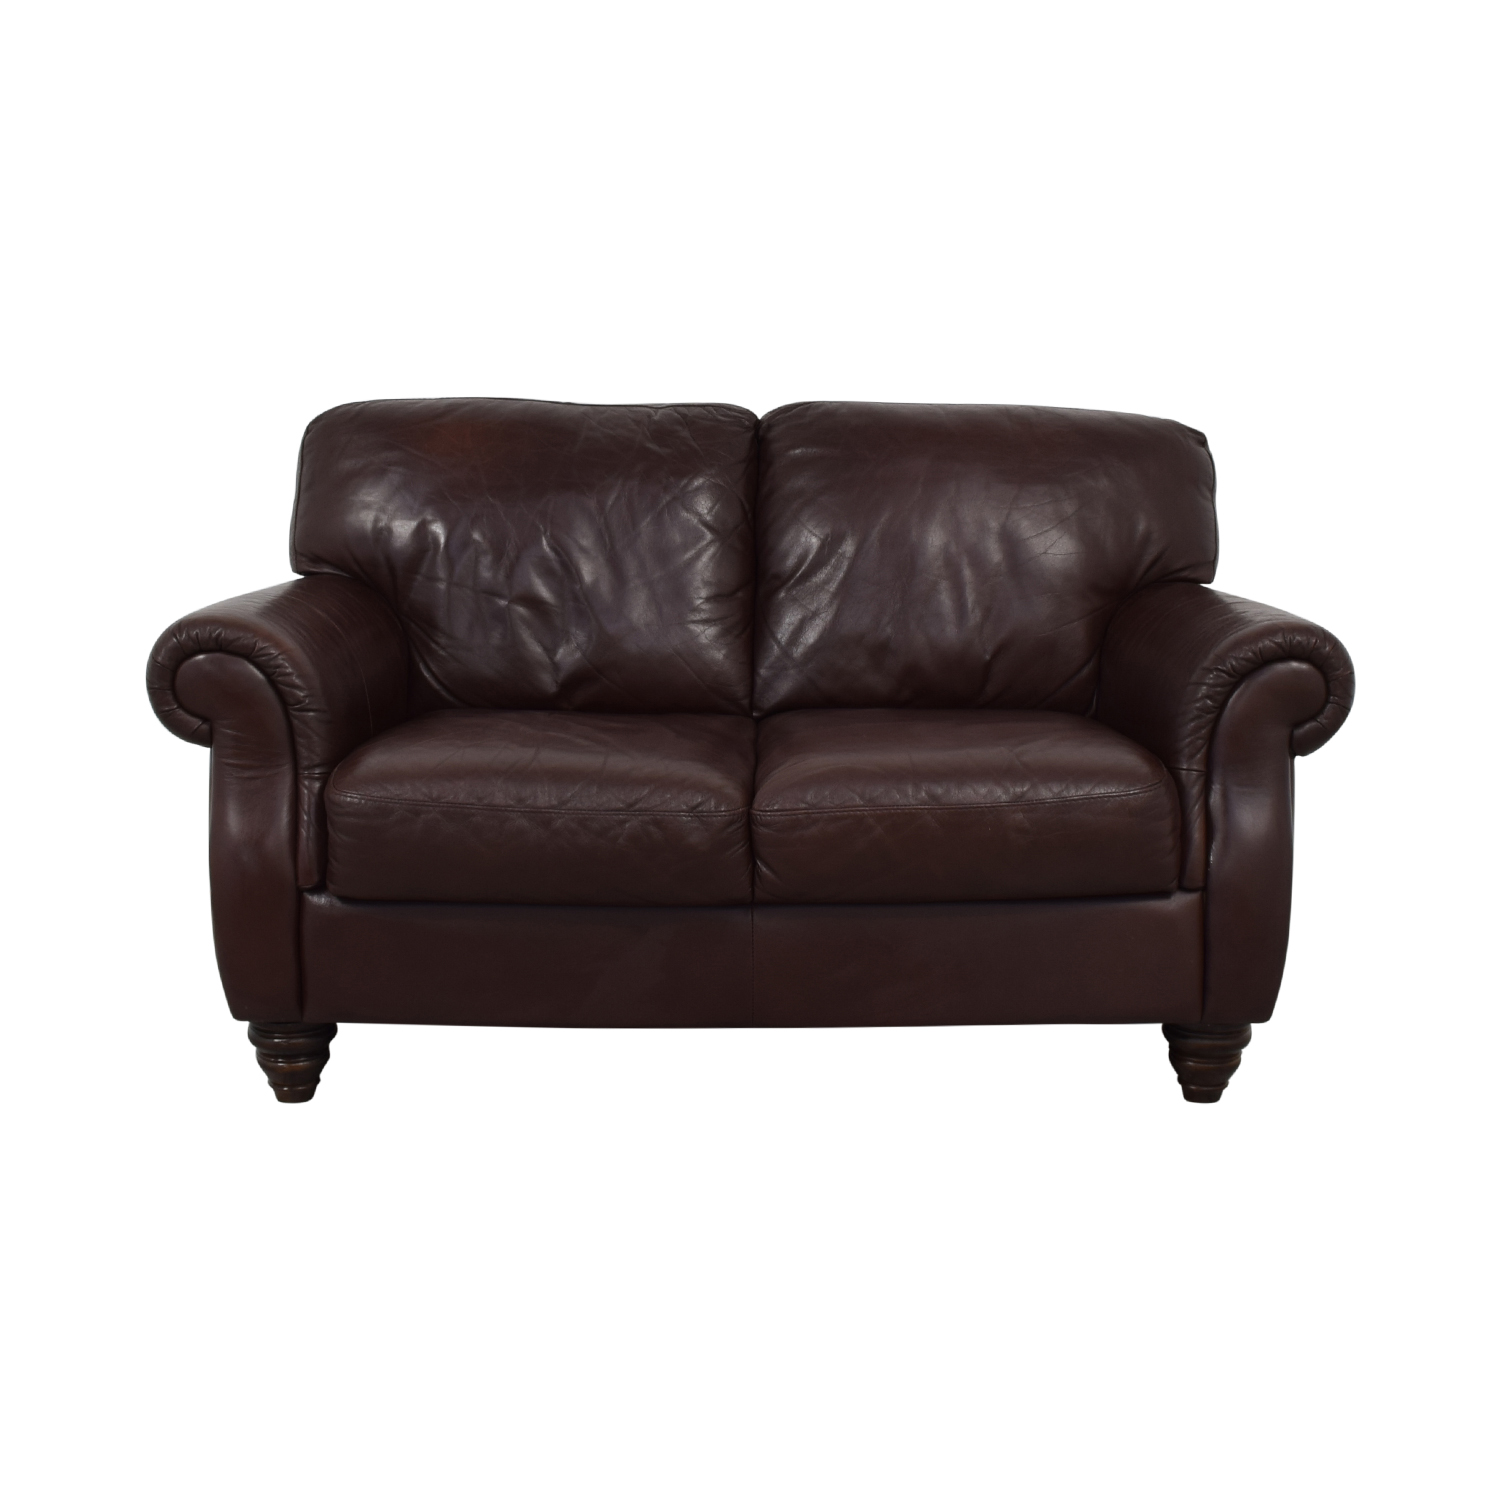 Fortunoff Italia Fortunoff Brown Two-Cushion Love Seat for sale